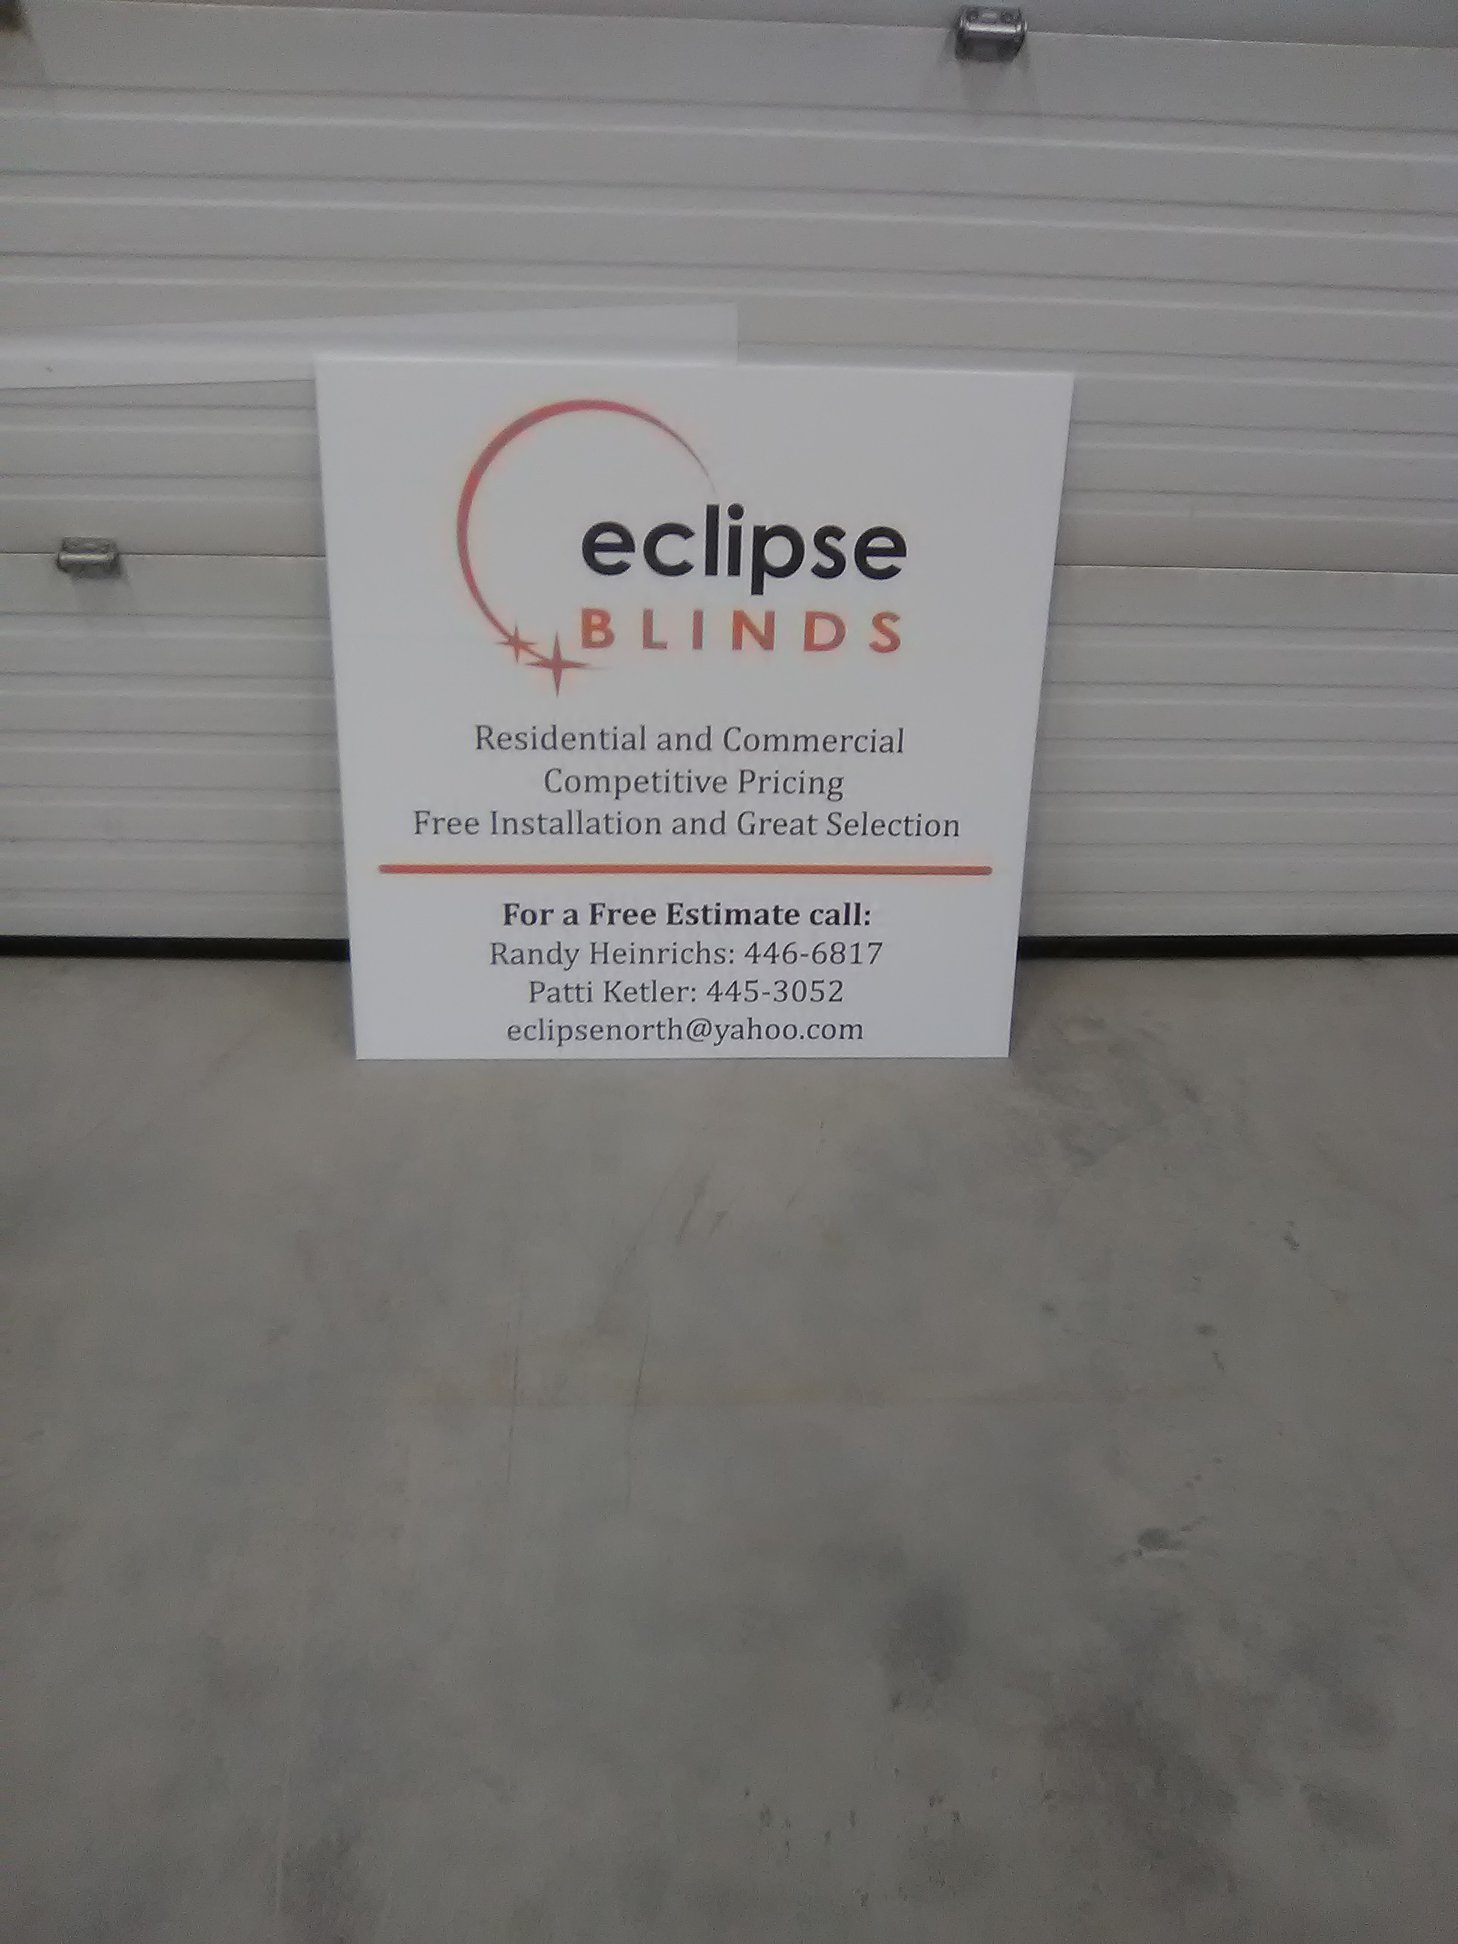 Eclipse Blinds Exterior Signage